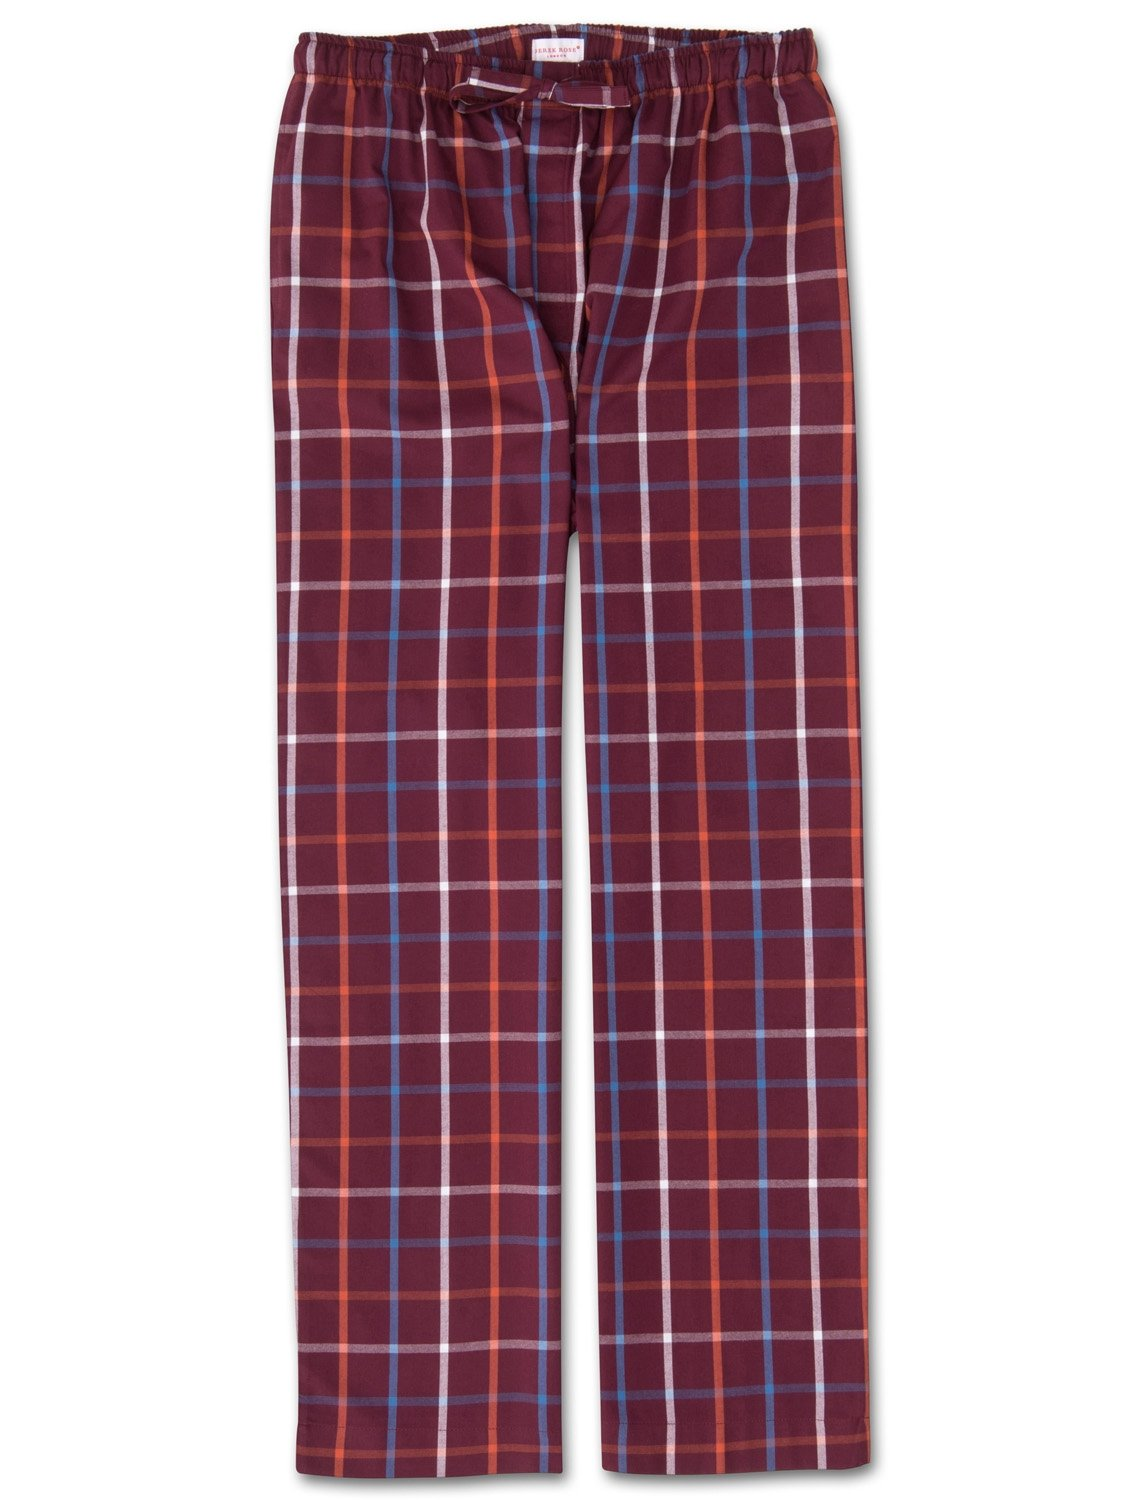 Men's Lounge Trousers Ranga 33 Brushed Cotton Check Multi